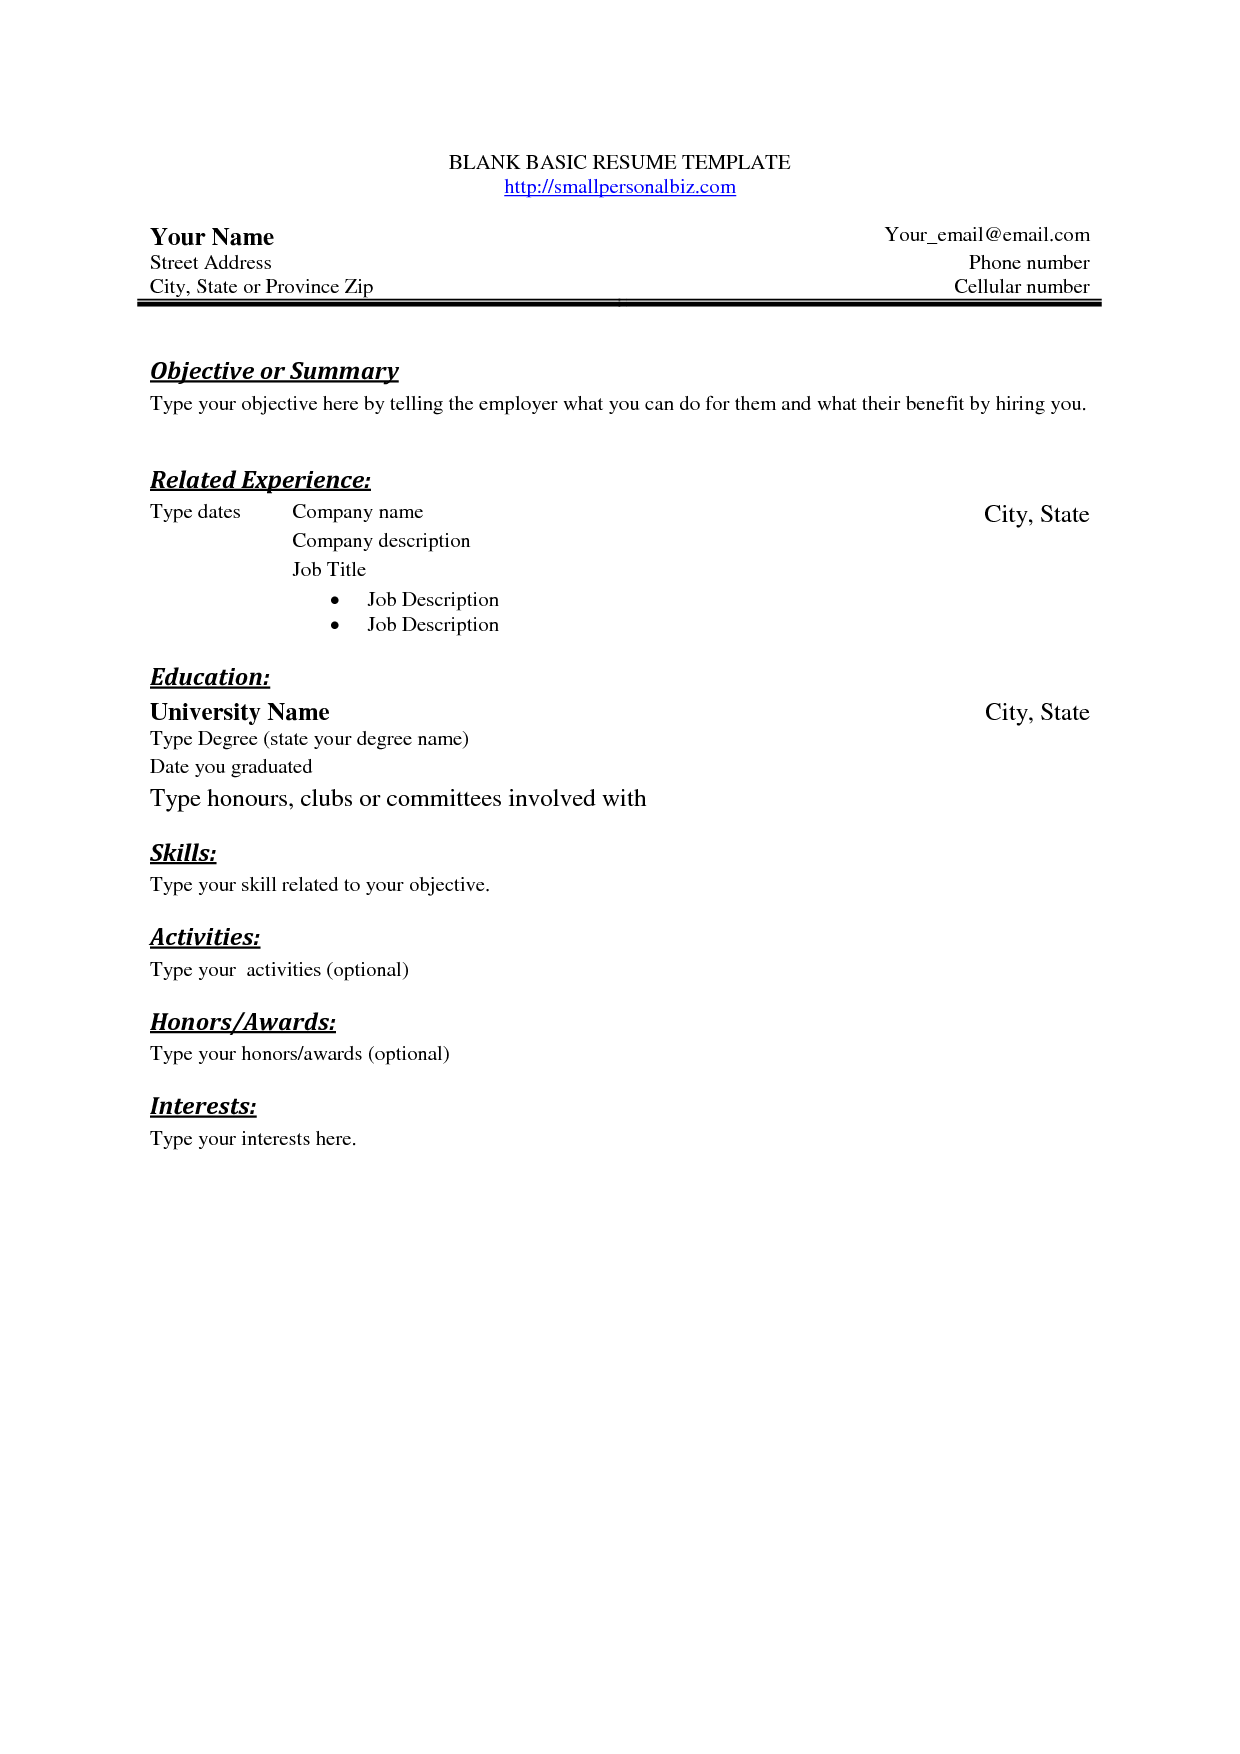 Stylist And Luxury Simple Resume Layout  Free Basic Blank Resume